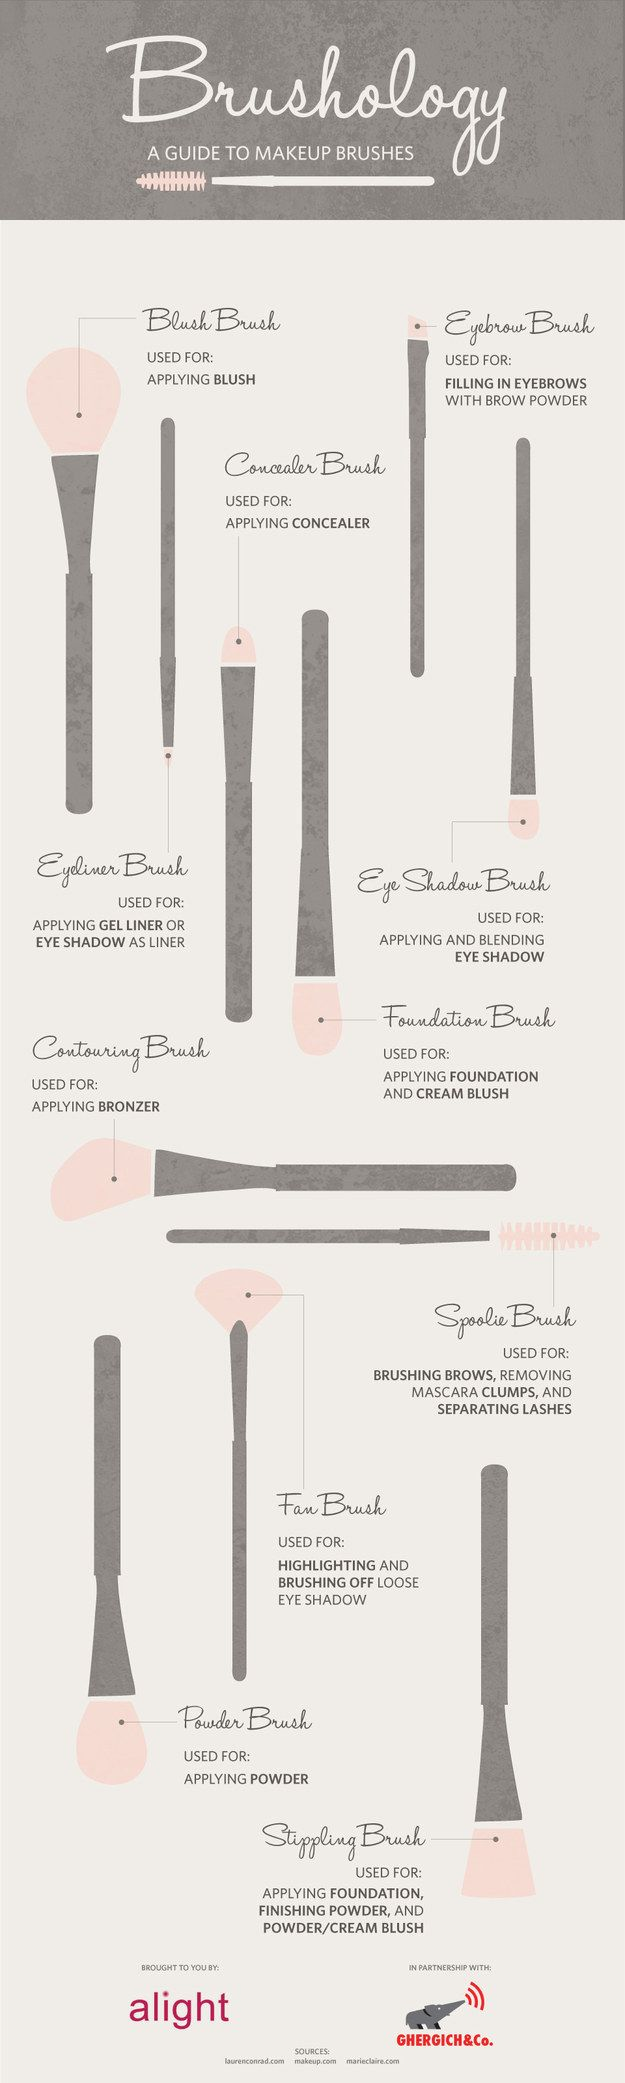 PINTEREST @STYLEXPERT Guide to Makeup Brushes